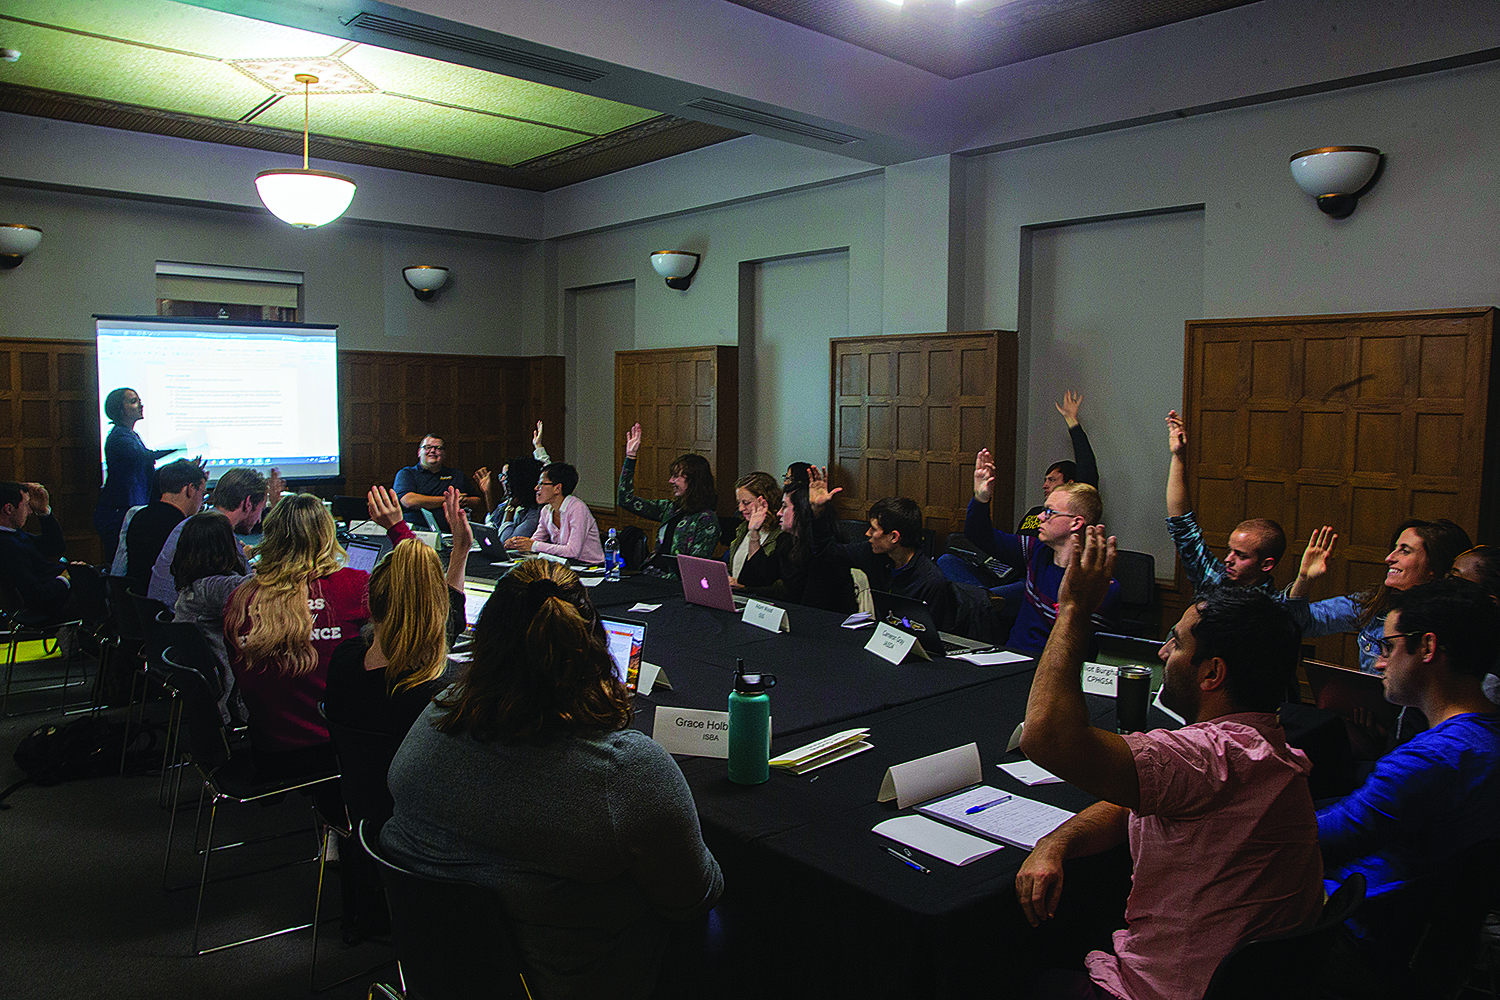 GPSG members vote on funding movement at the University of Iowa GPSG meeting in the IMU on October 8th, 2019.